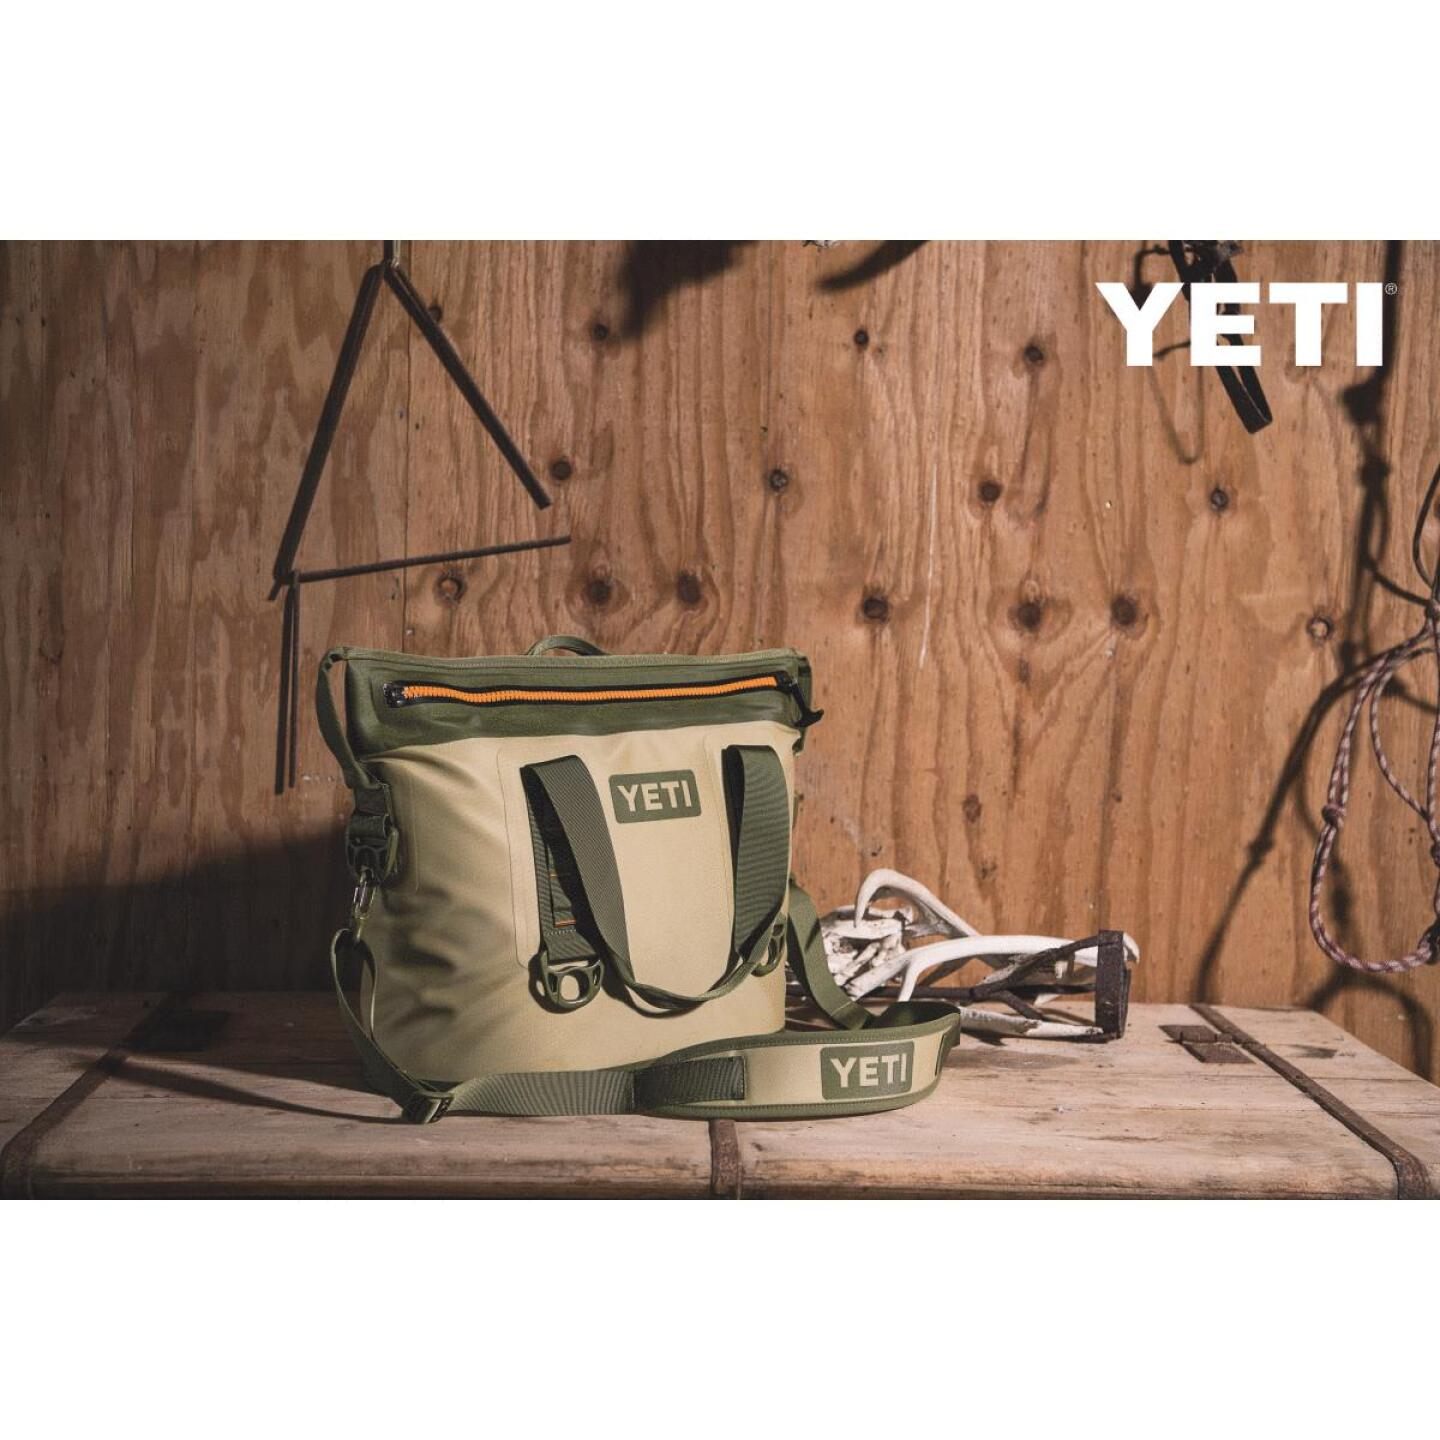 Yeti Hopper Two 20 Tan Soft-Side Cooler (16-Can) Image 2